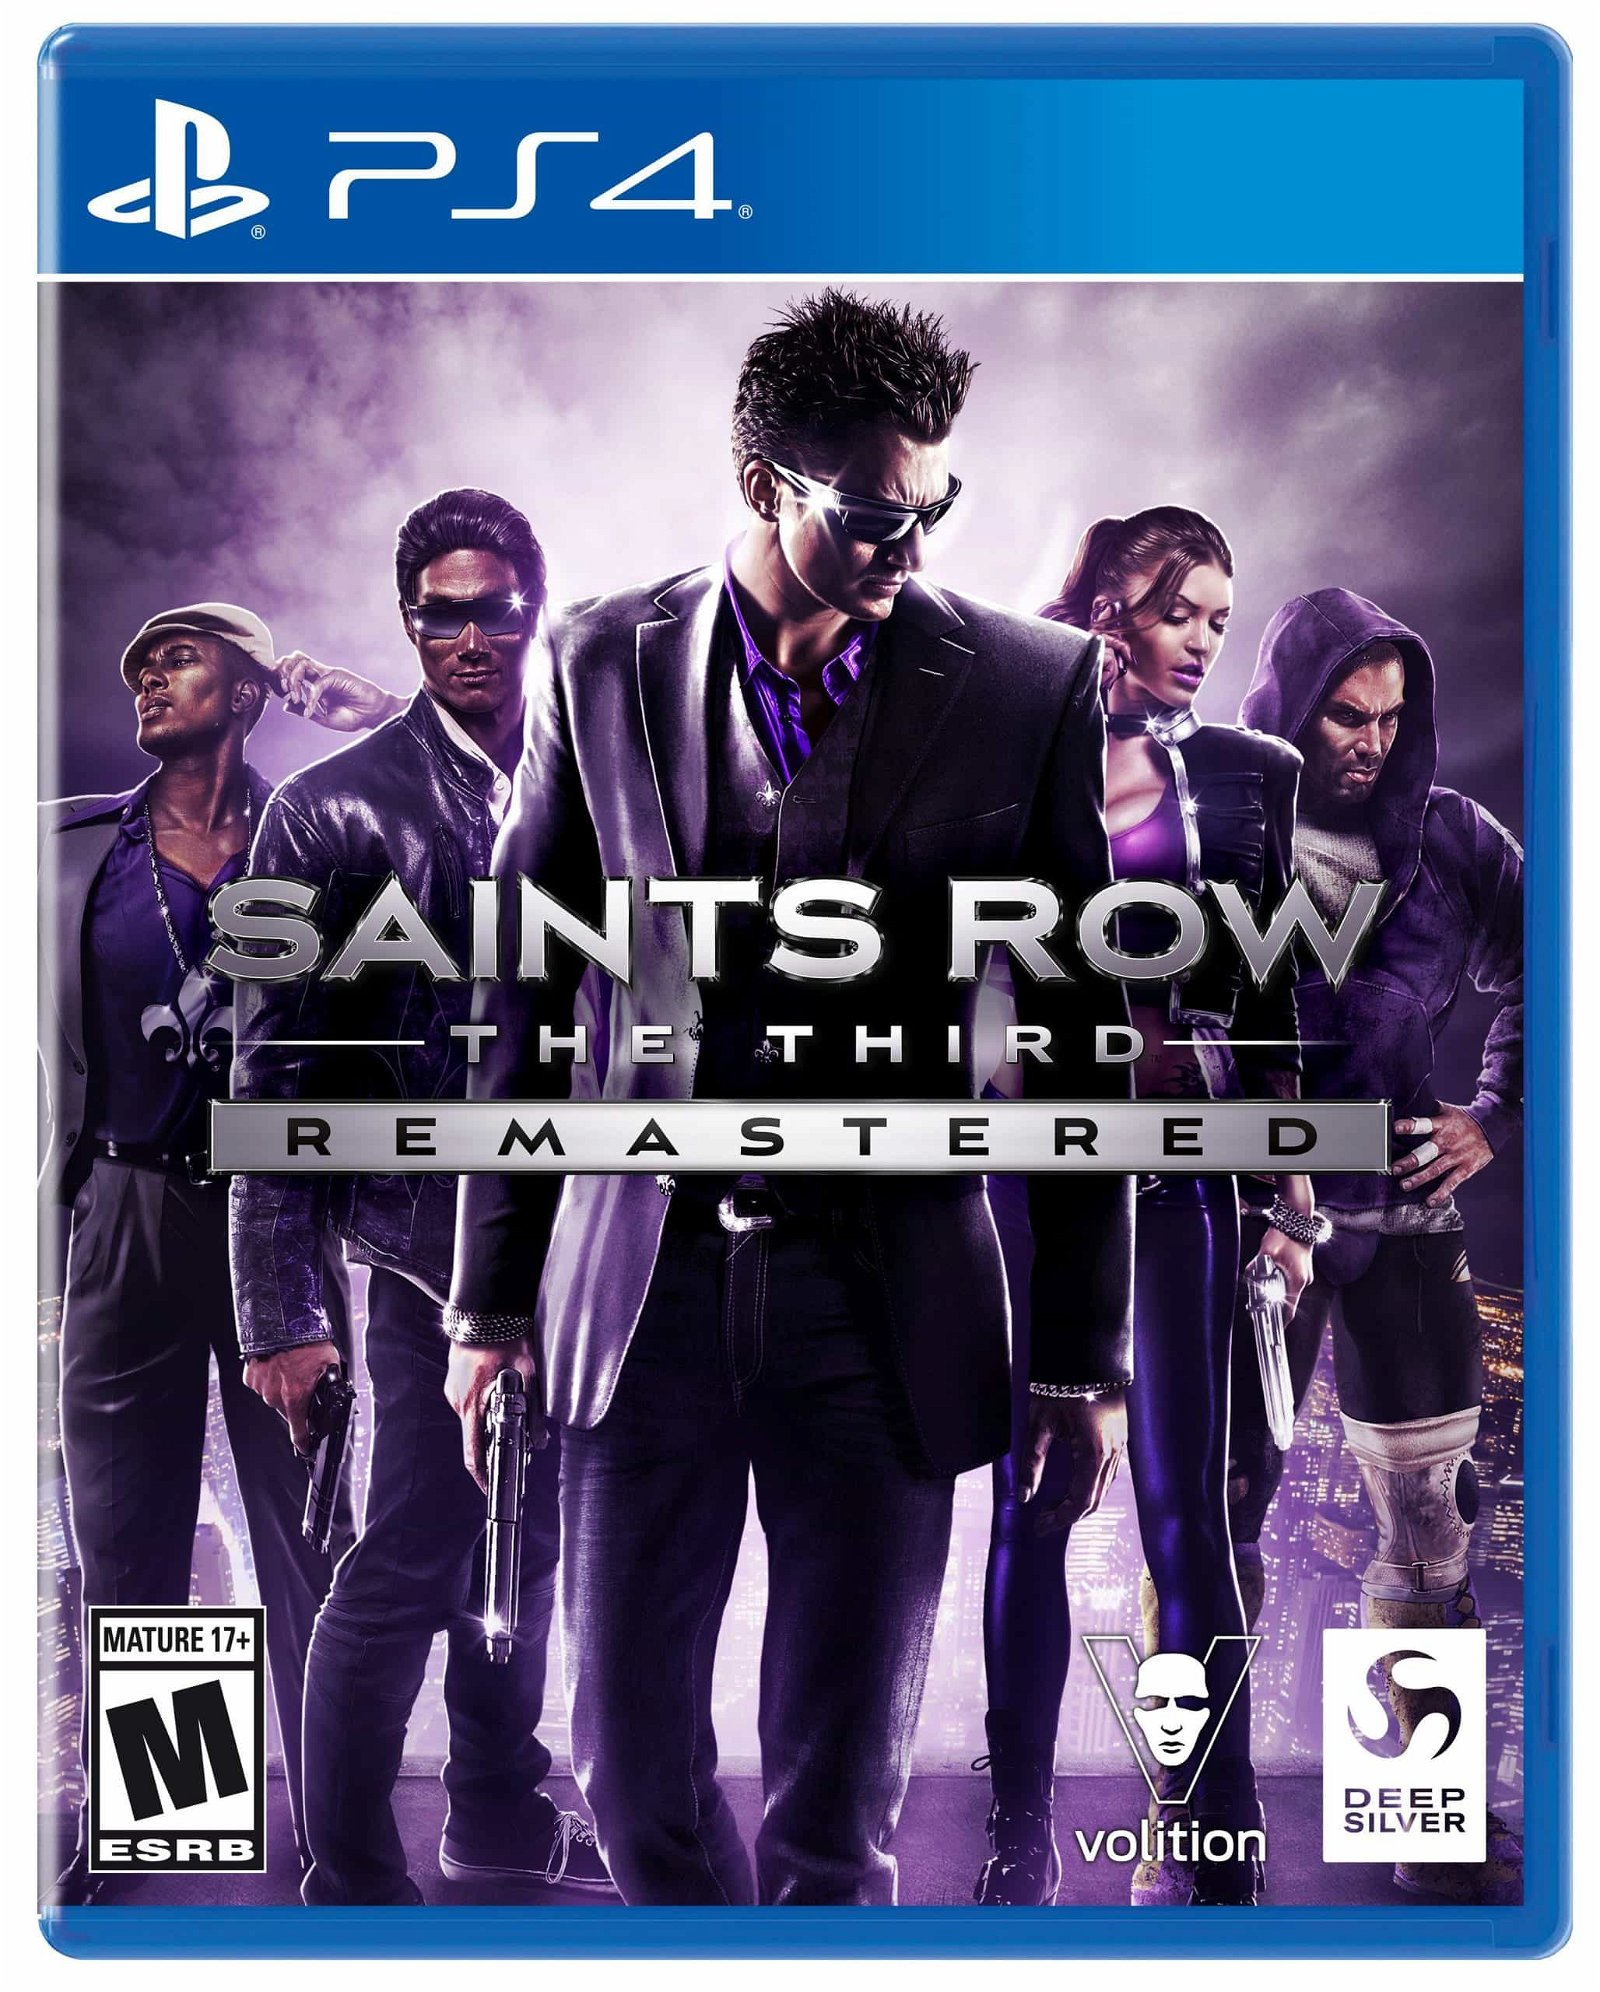 Saints Row: The Third Remastered Review 5